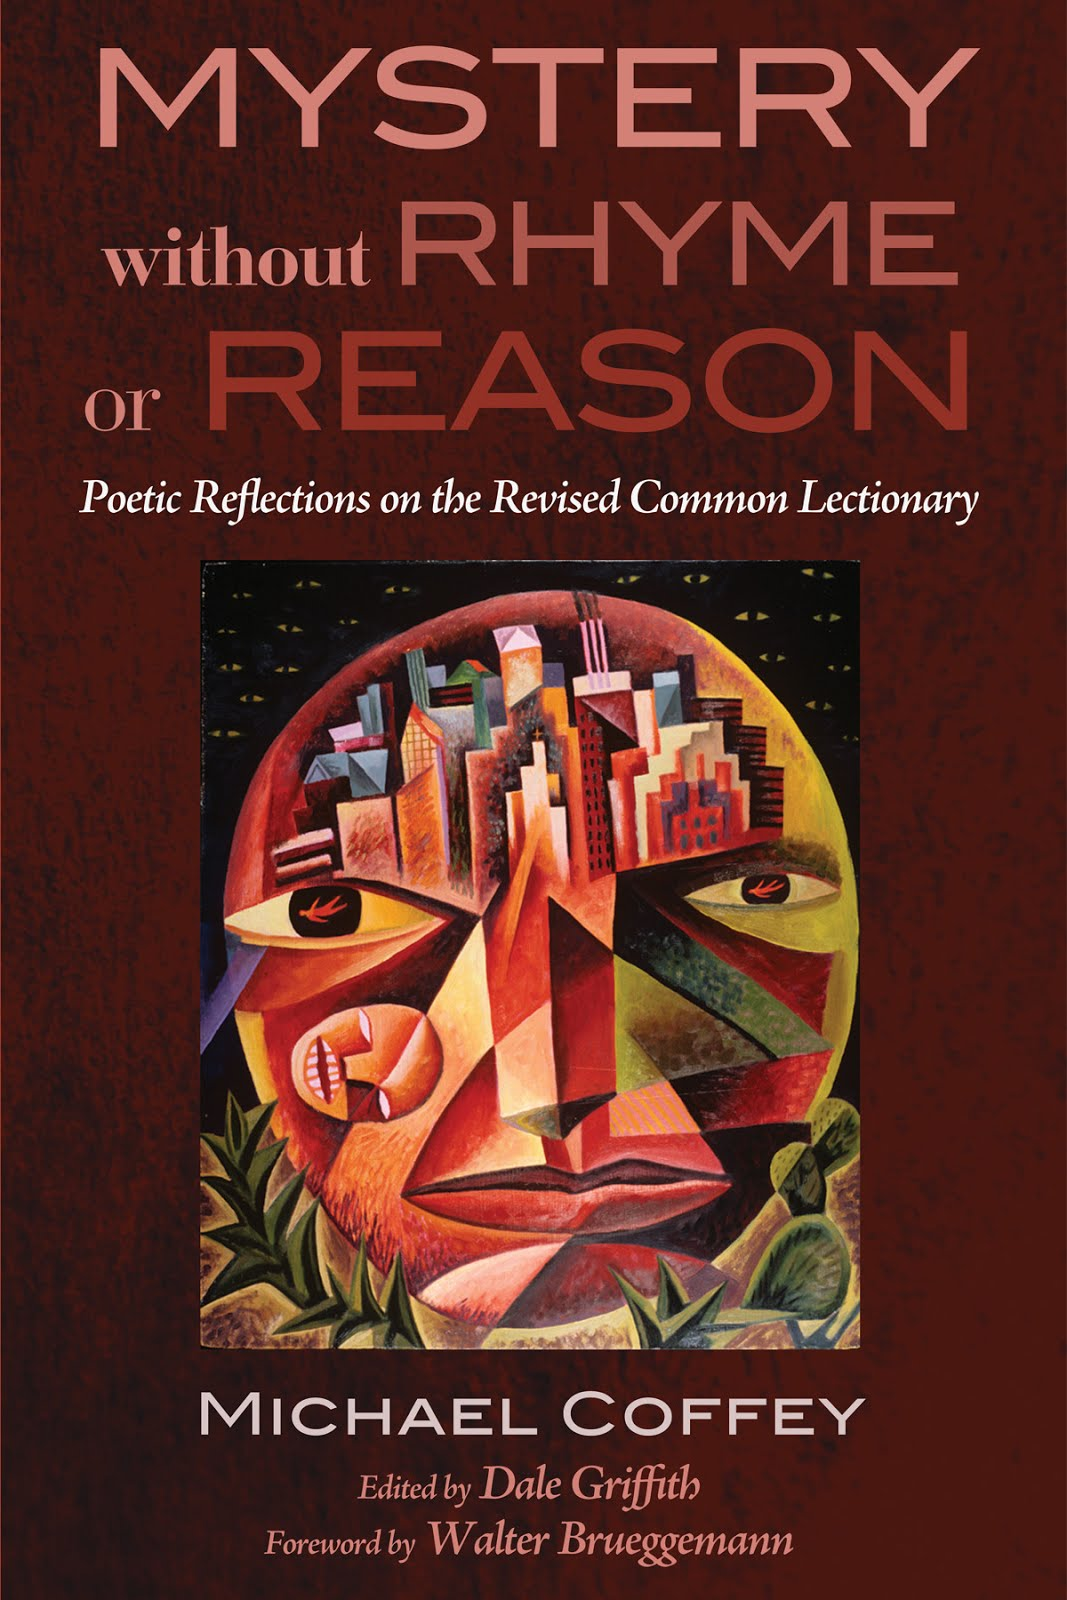 Mystery without Rhyme or Reason: Poetic Reflections on the Revised Common Lectionary